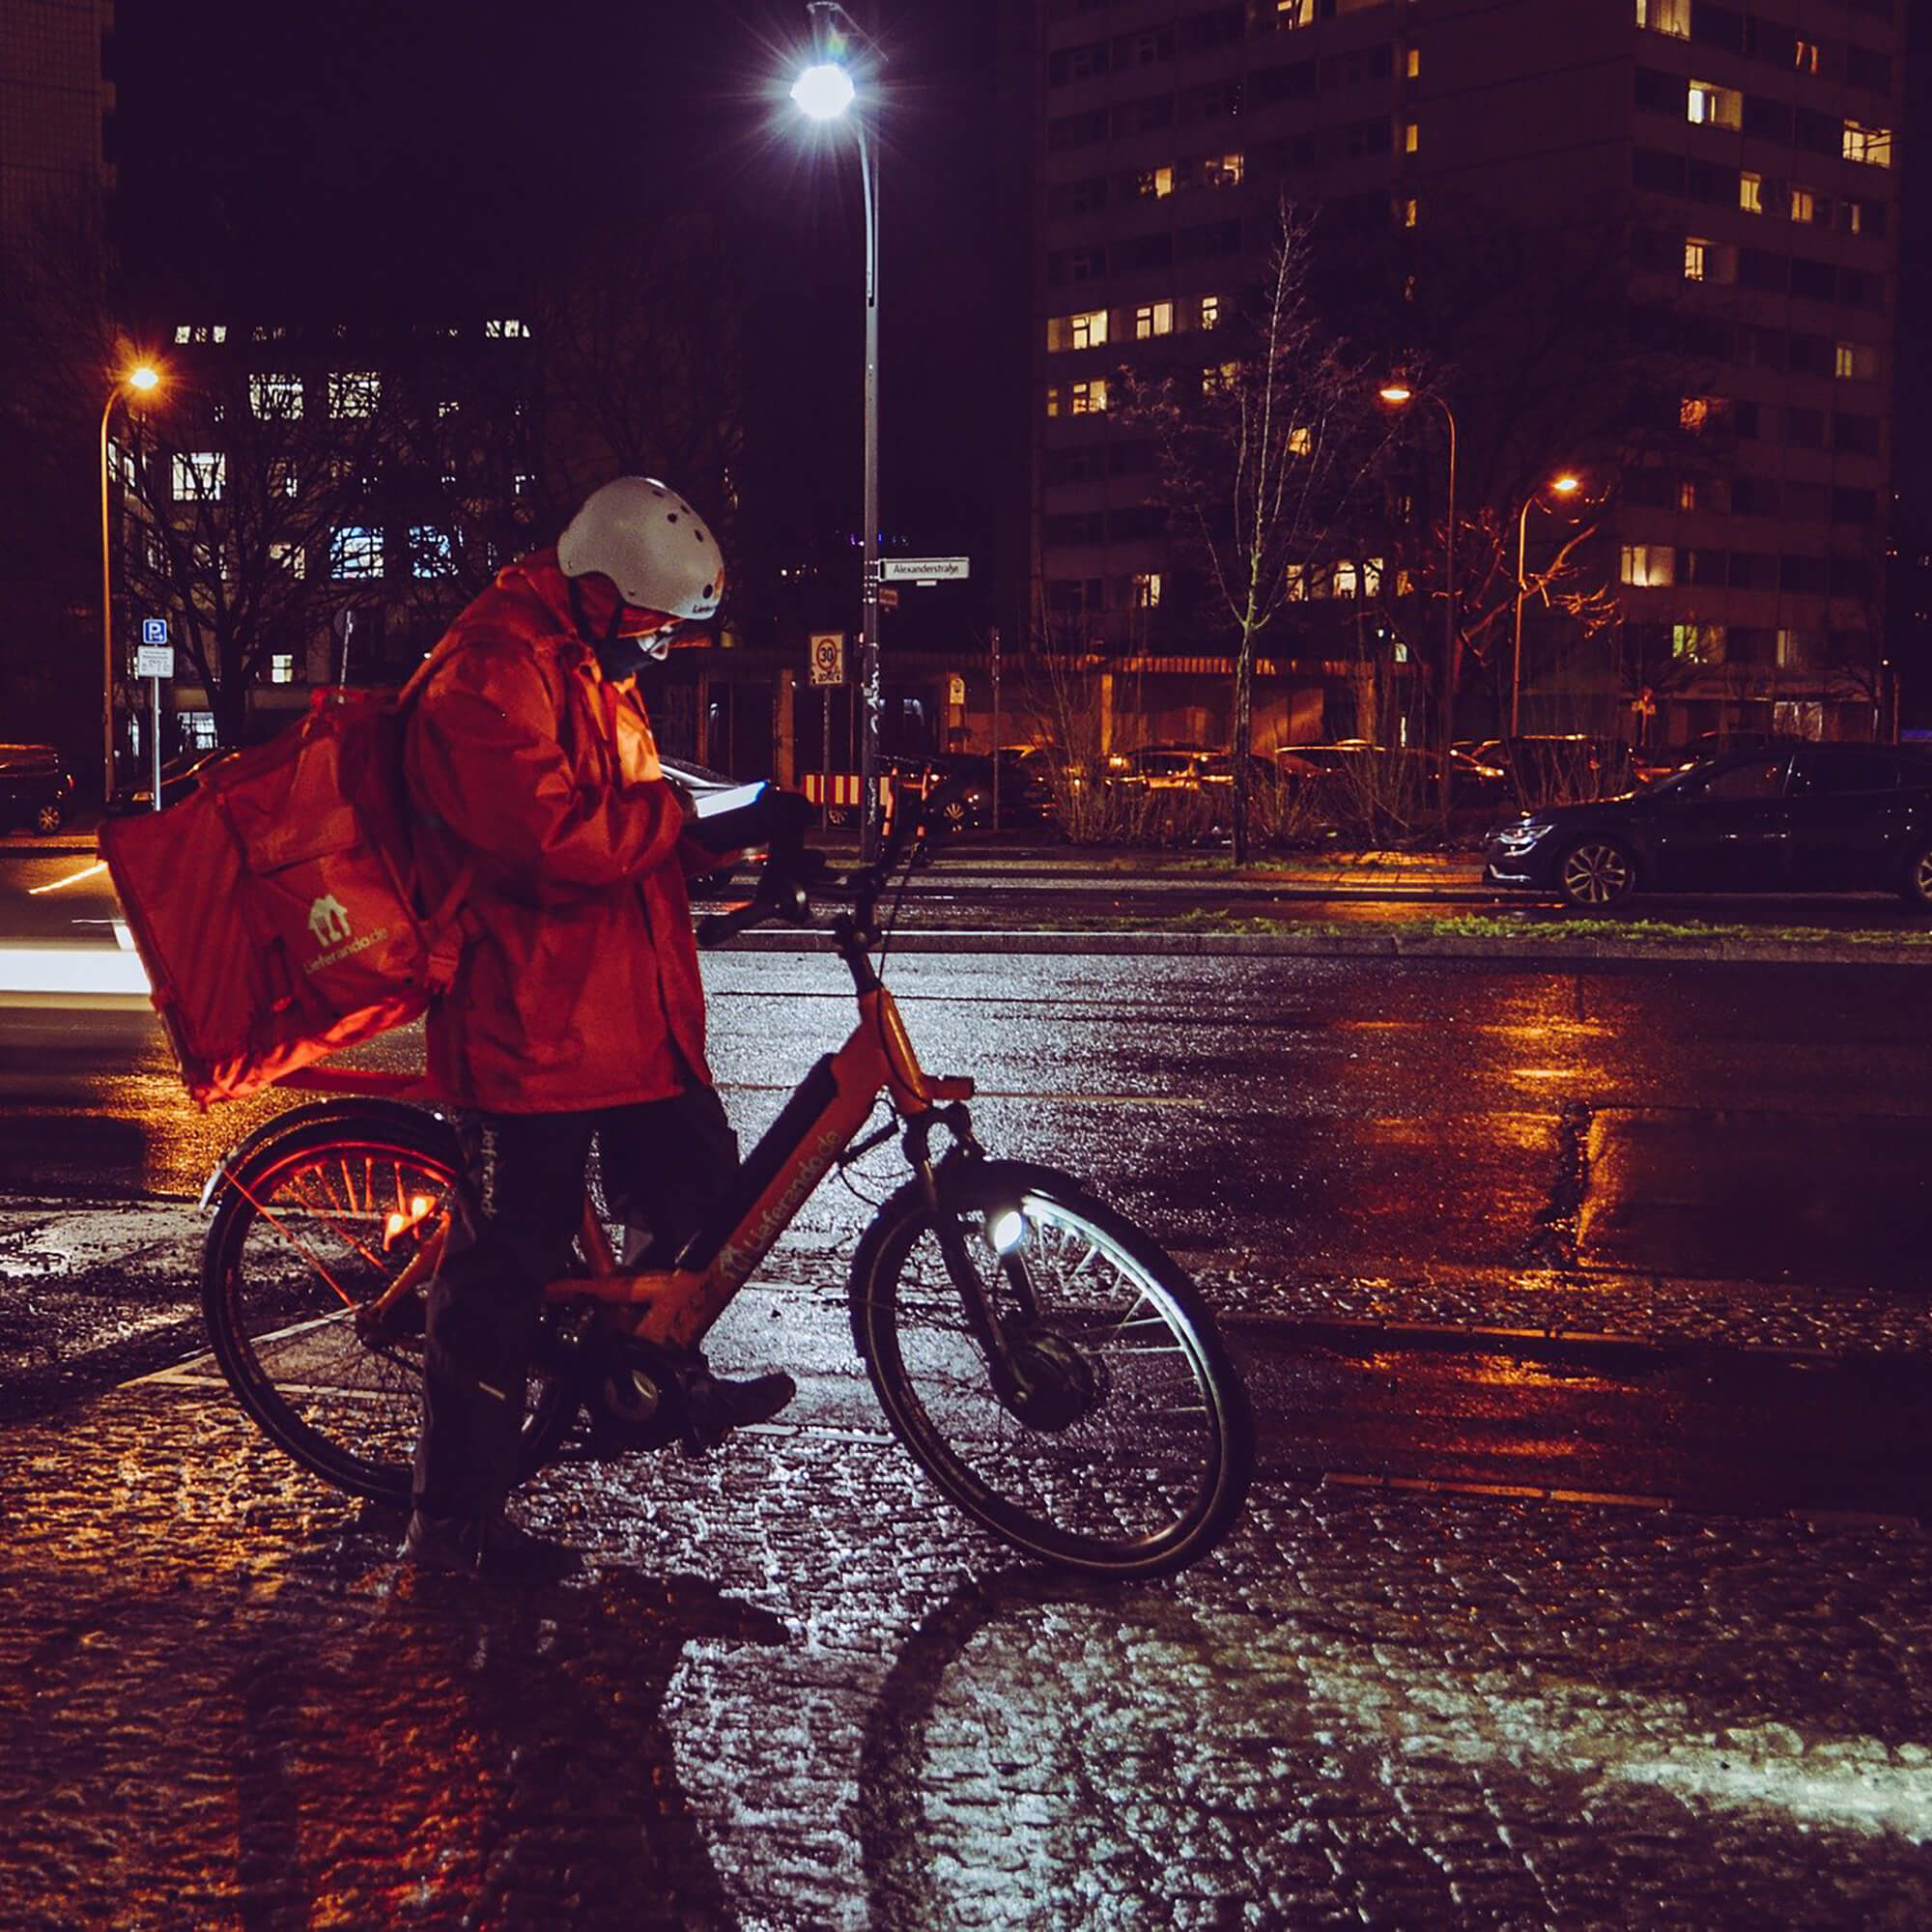 Bike courier at night